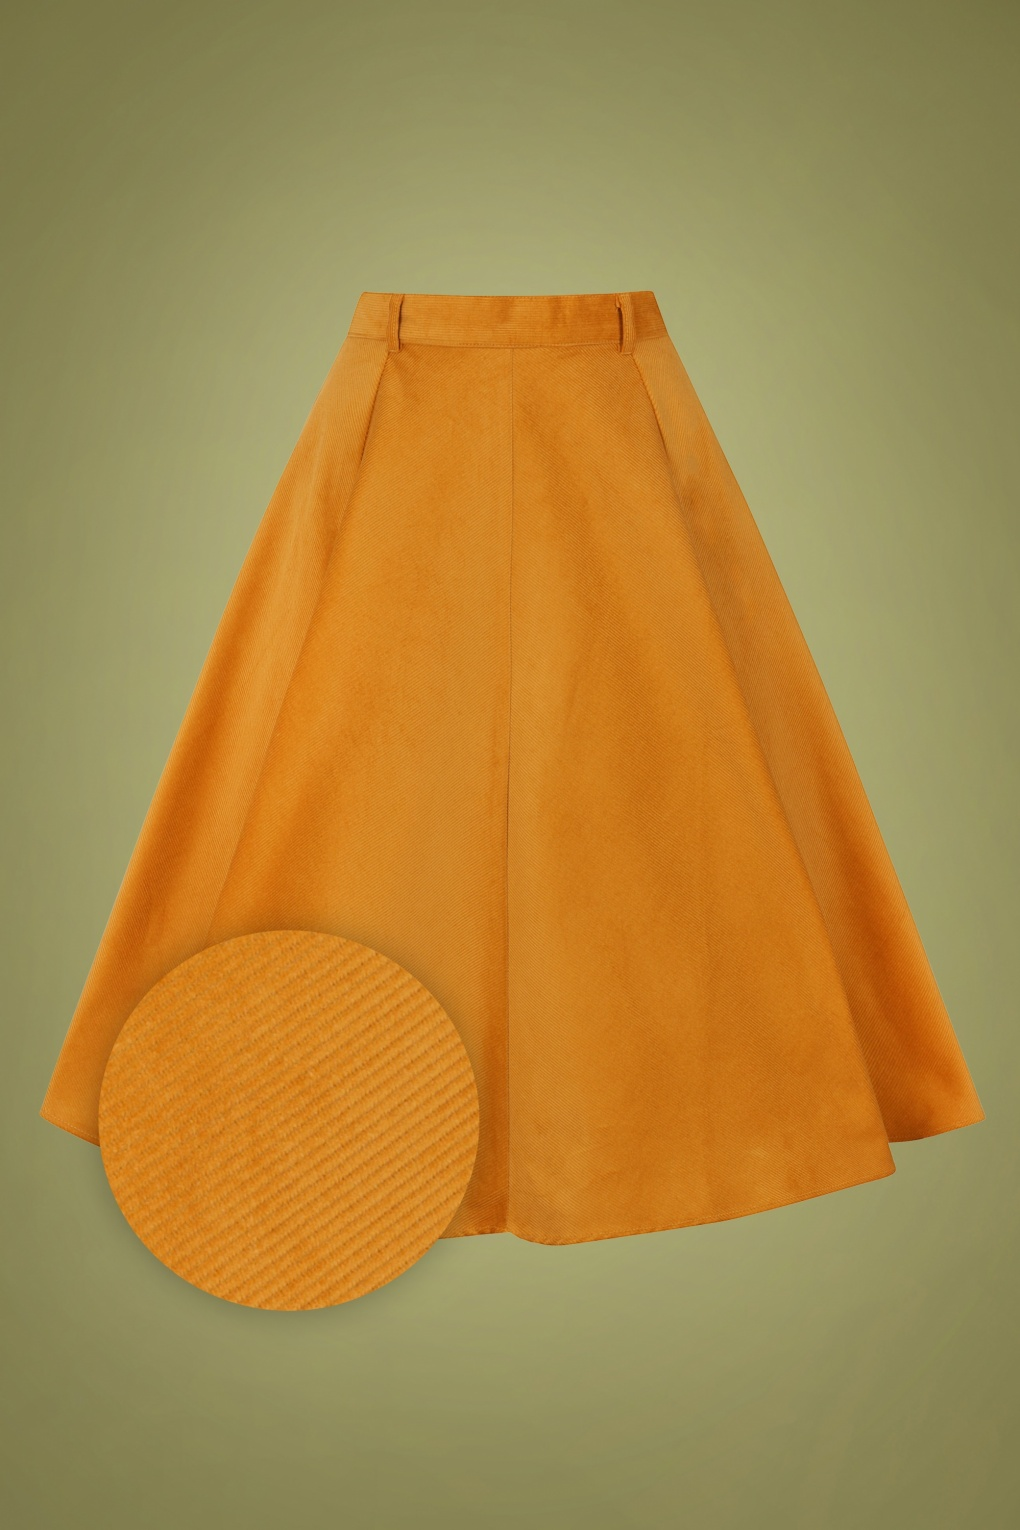 1940s Style Skirts- Vintage High Waisted Skirts 70s Jefferson Swing Skirt in Mustard Corduroy £57.48 AT vintagedancer.com